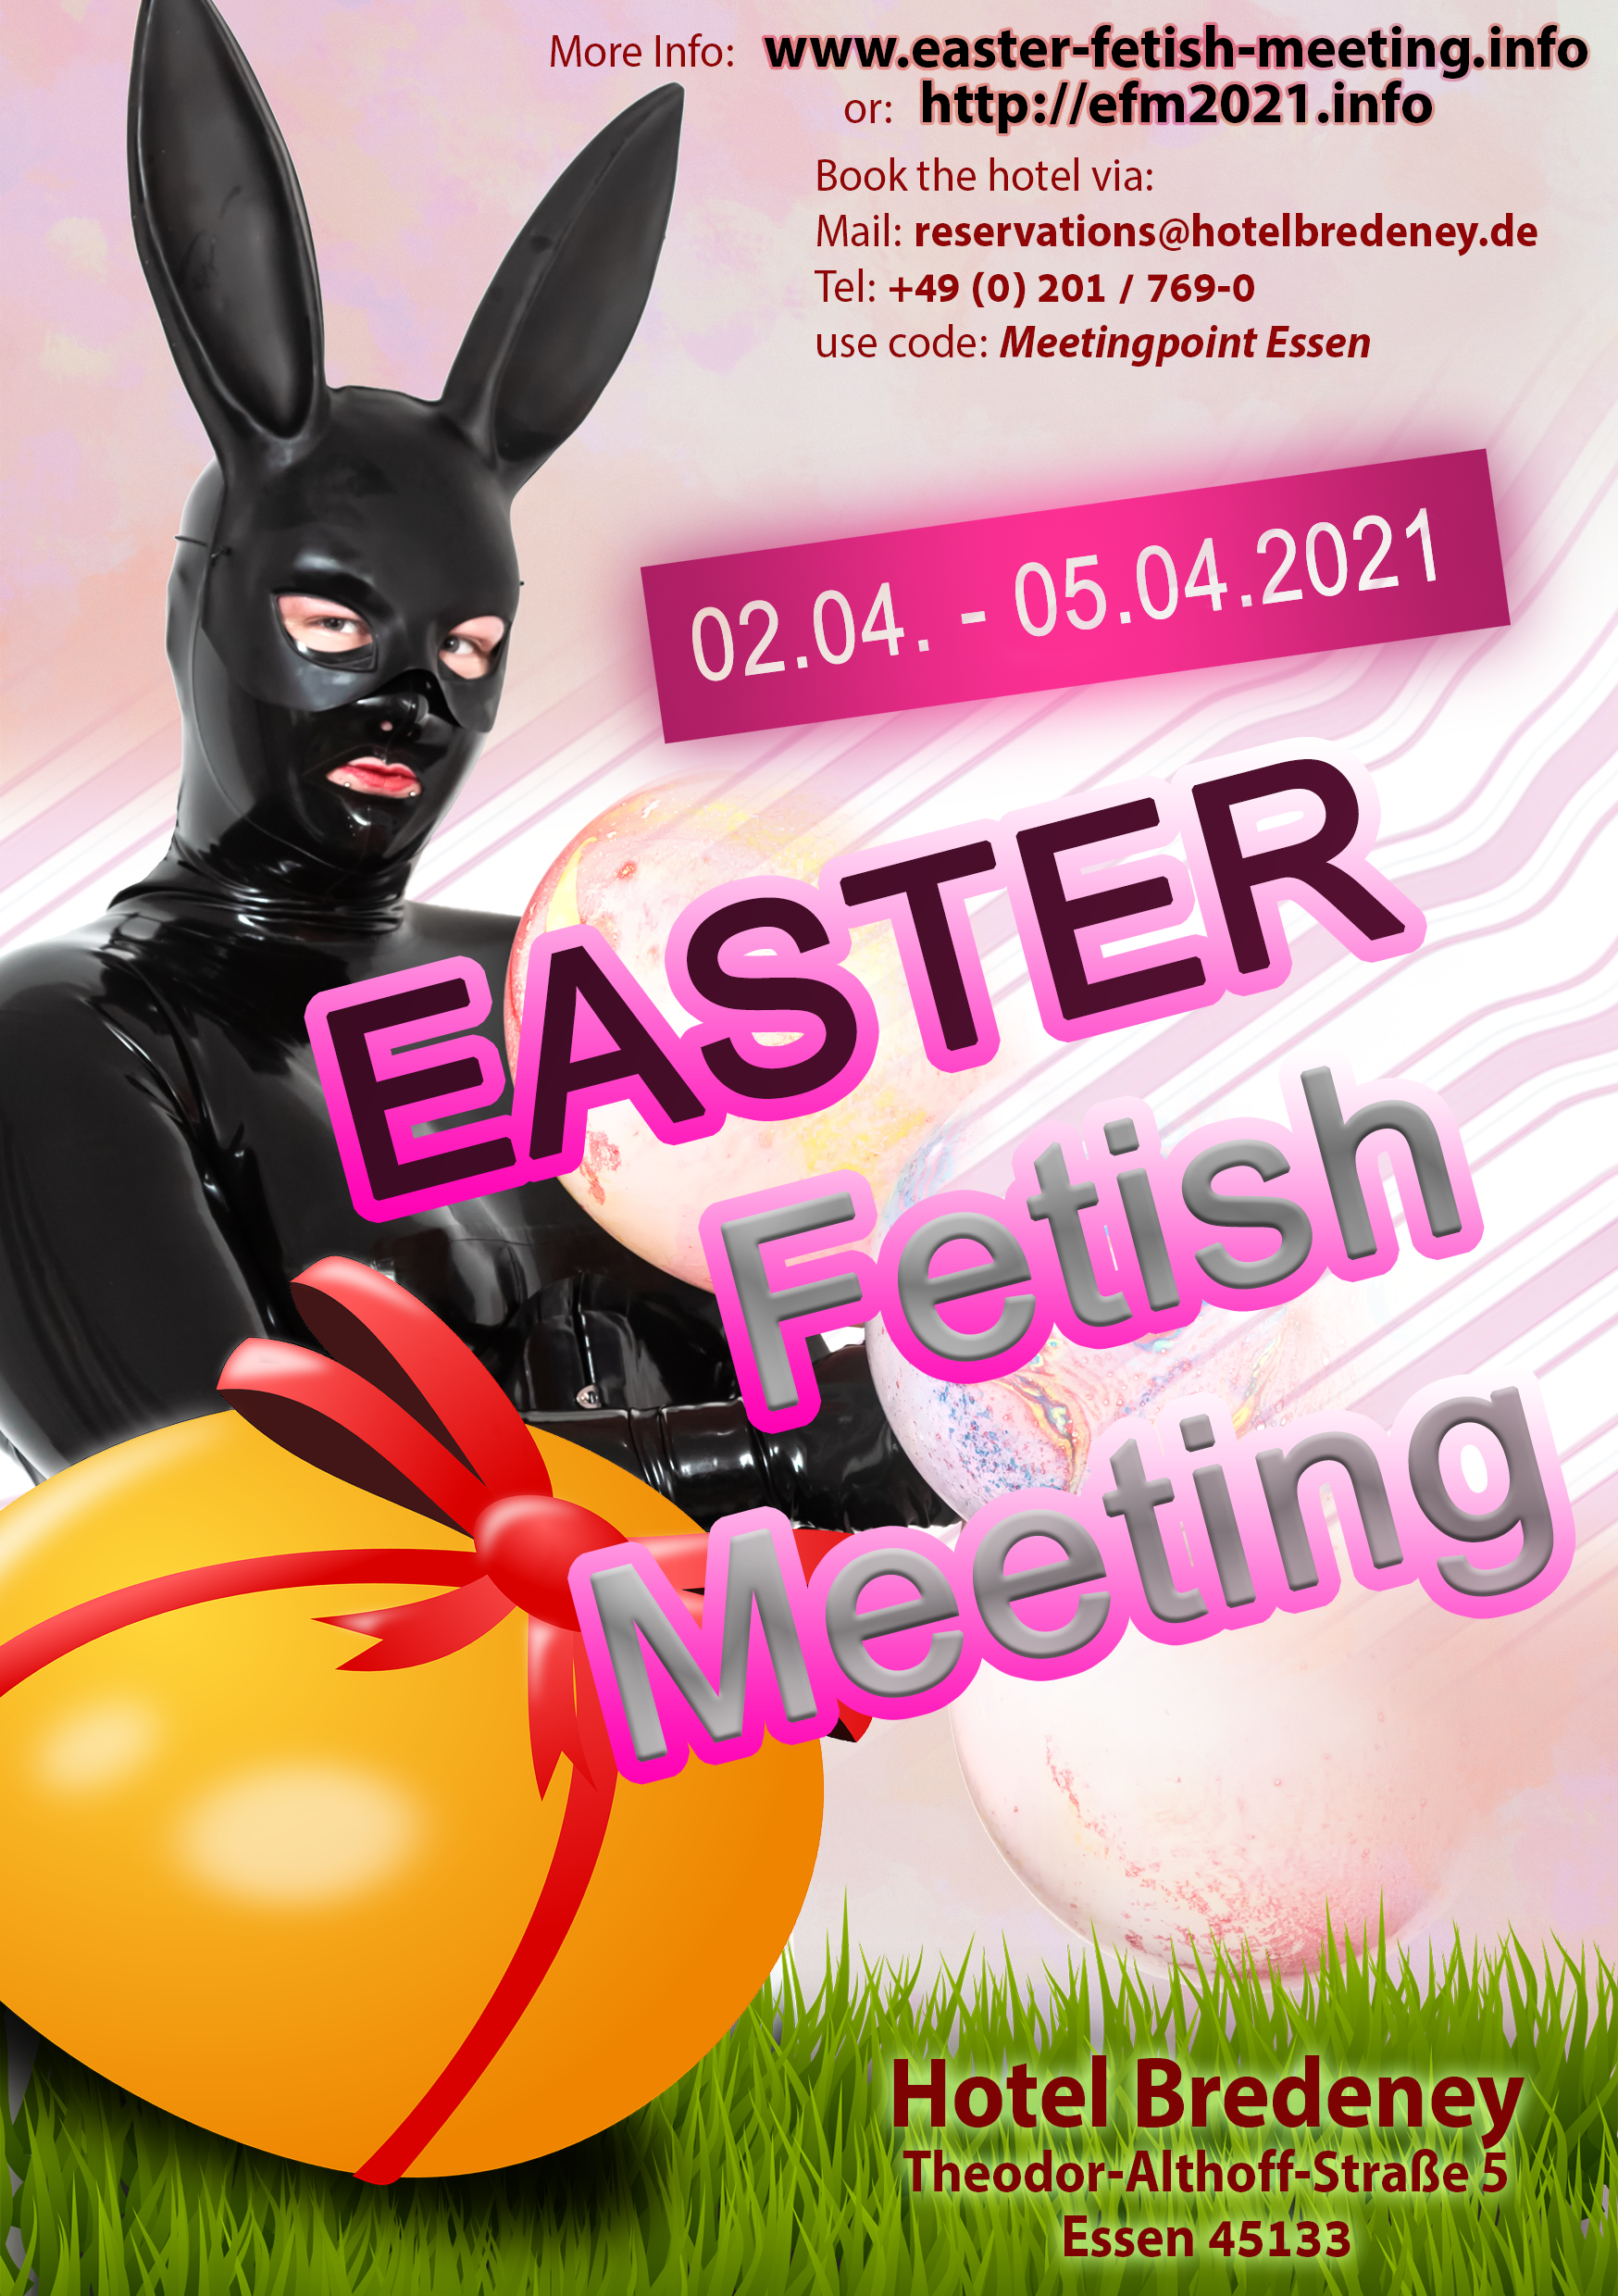 Easter Fetish Meeting 2021 - Bunny